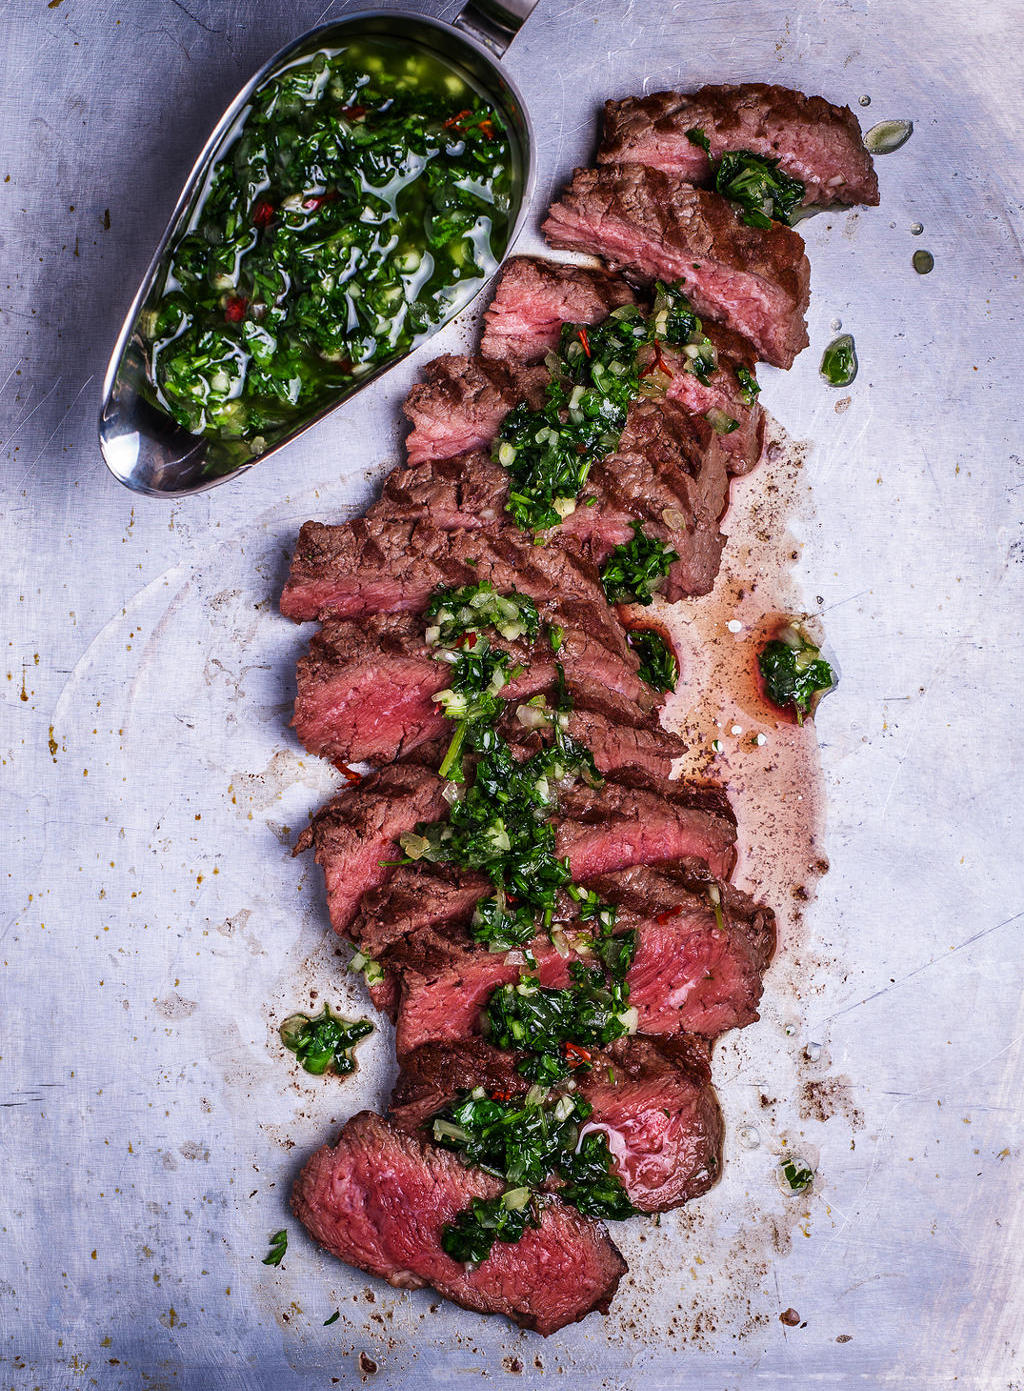 Sliced beef barbecue steak with chimichurri sauce top view rustic metal background